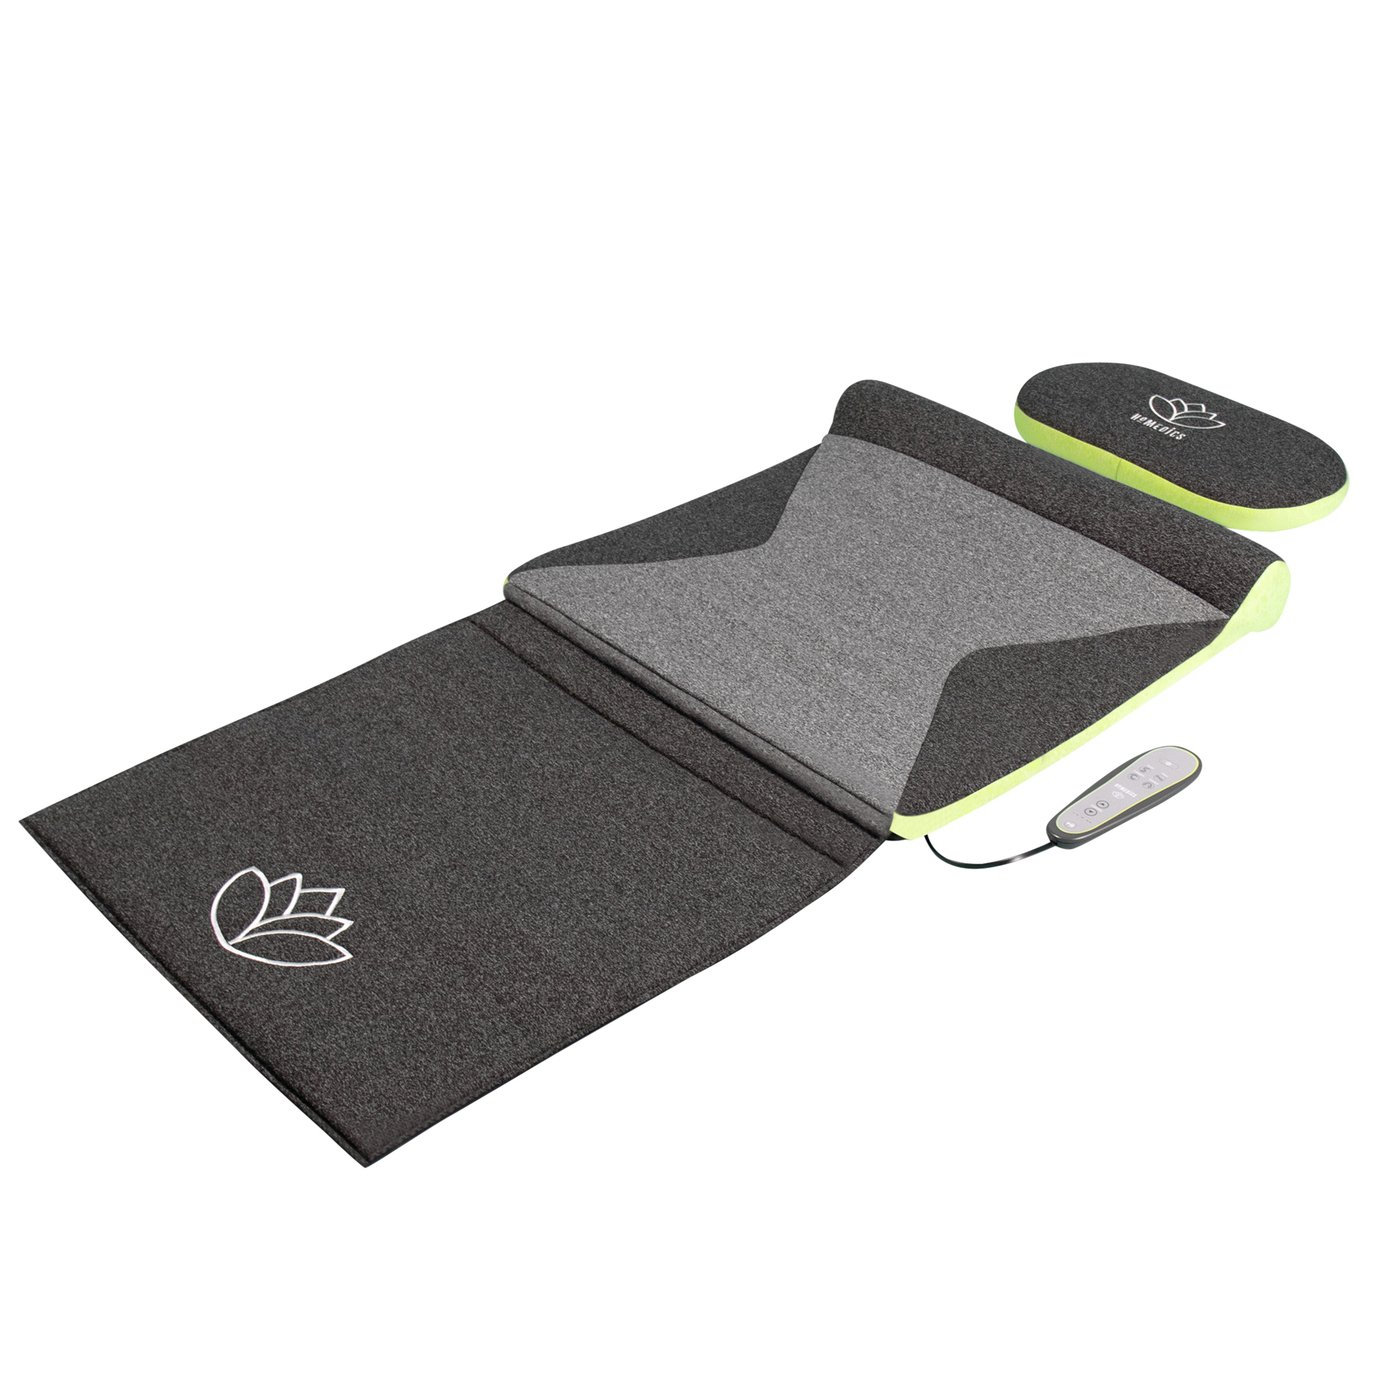 Homedics Stretch Mat - XS